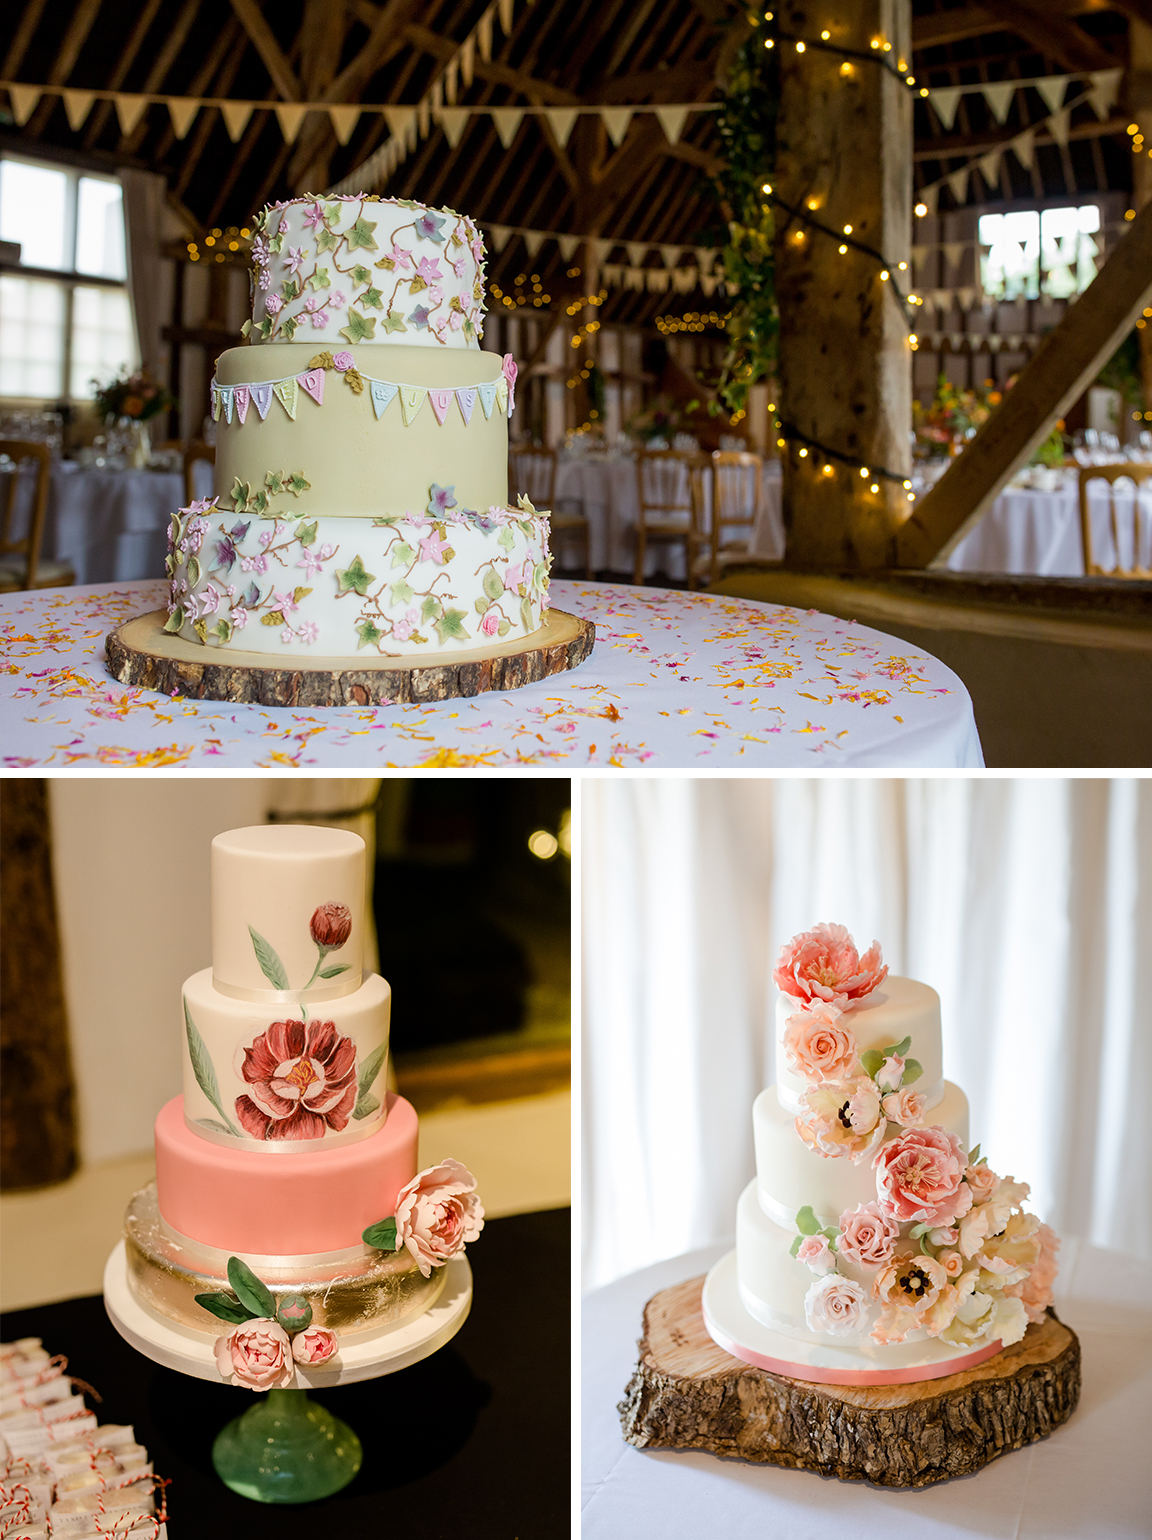 wedding decorations spring wedding ideas amp inspiration for easter wedding cakes 9153